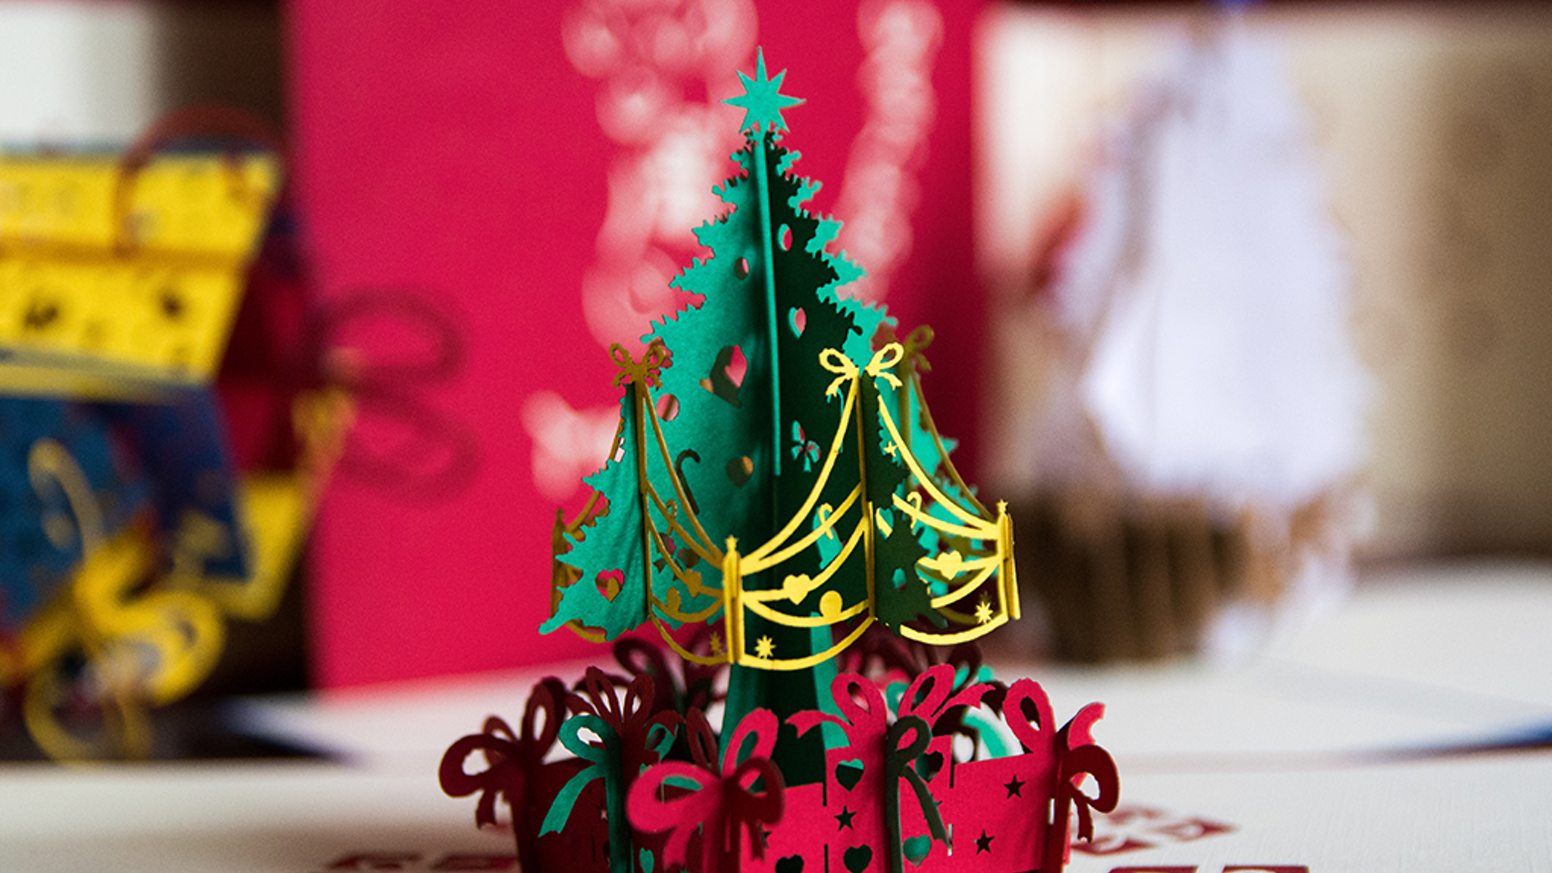 Wonderful 3D Popup Christmas Cards: Small, Yet Meaningful by ...